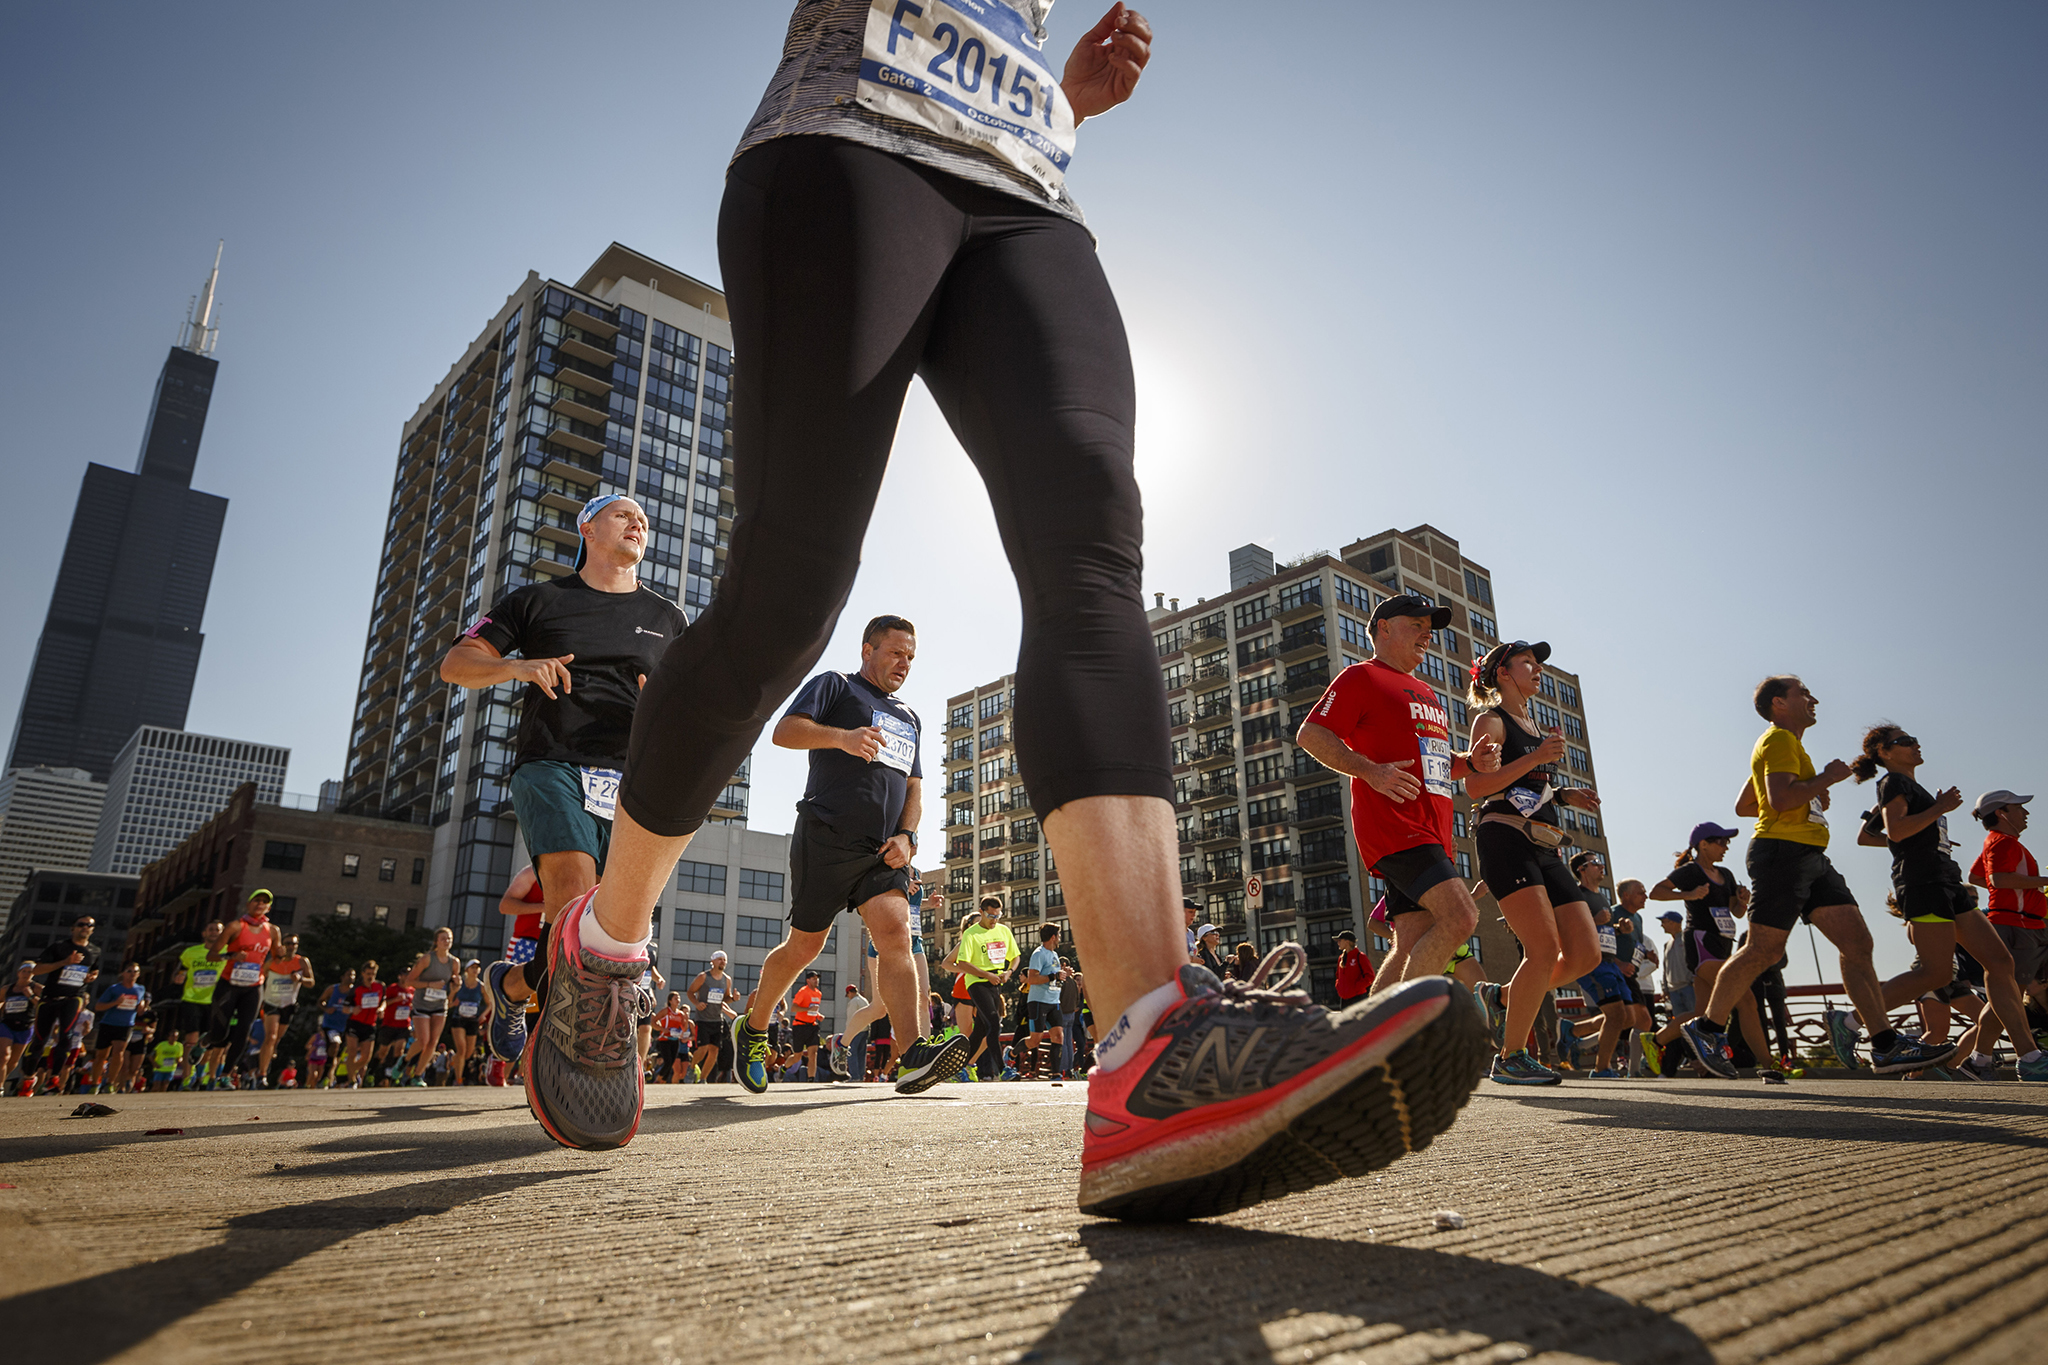 Top running clubs in Chicago